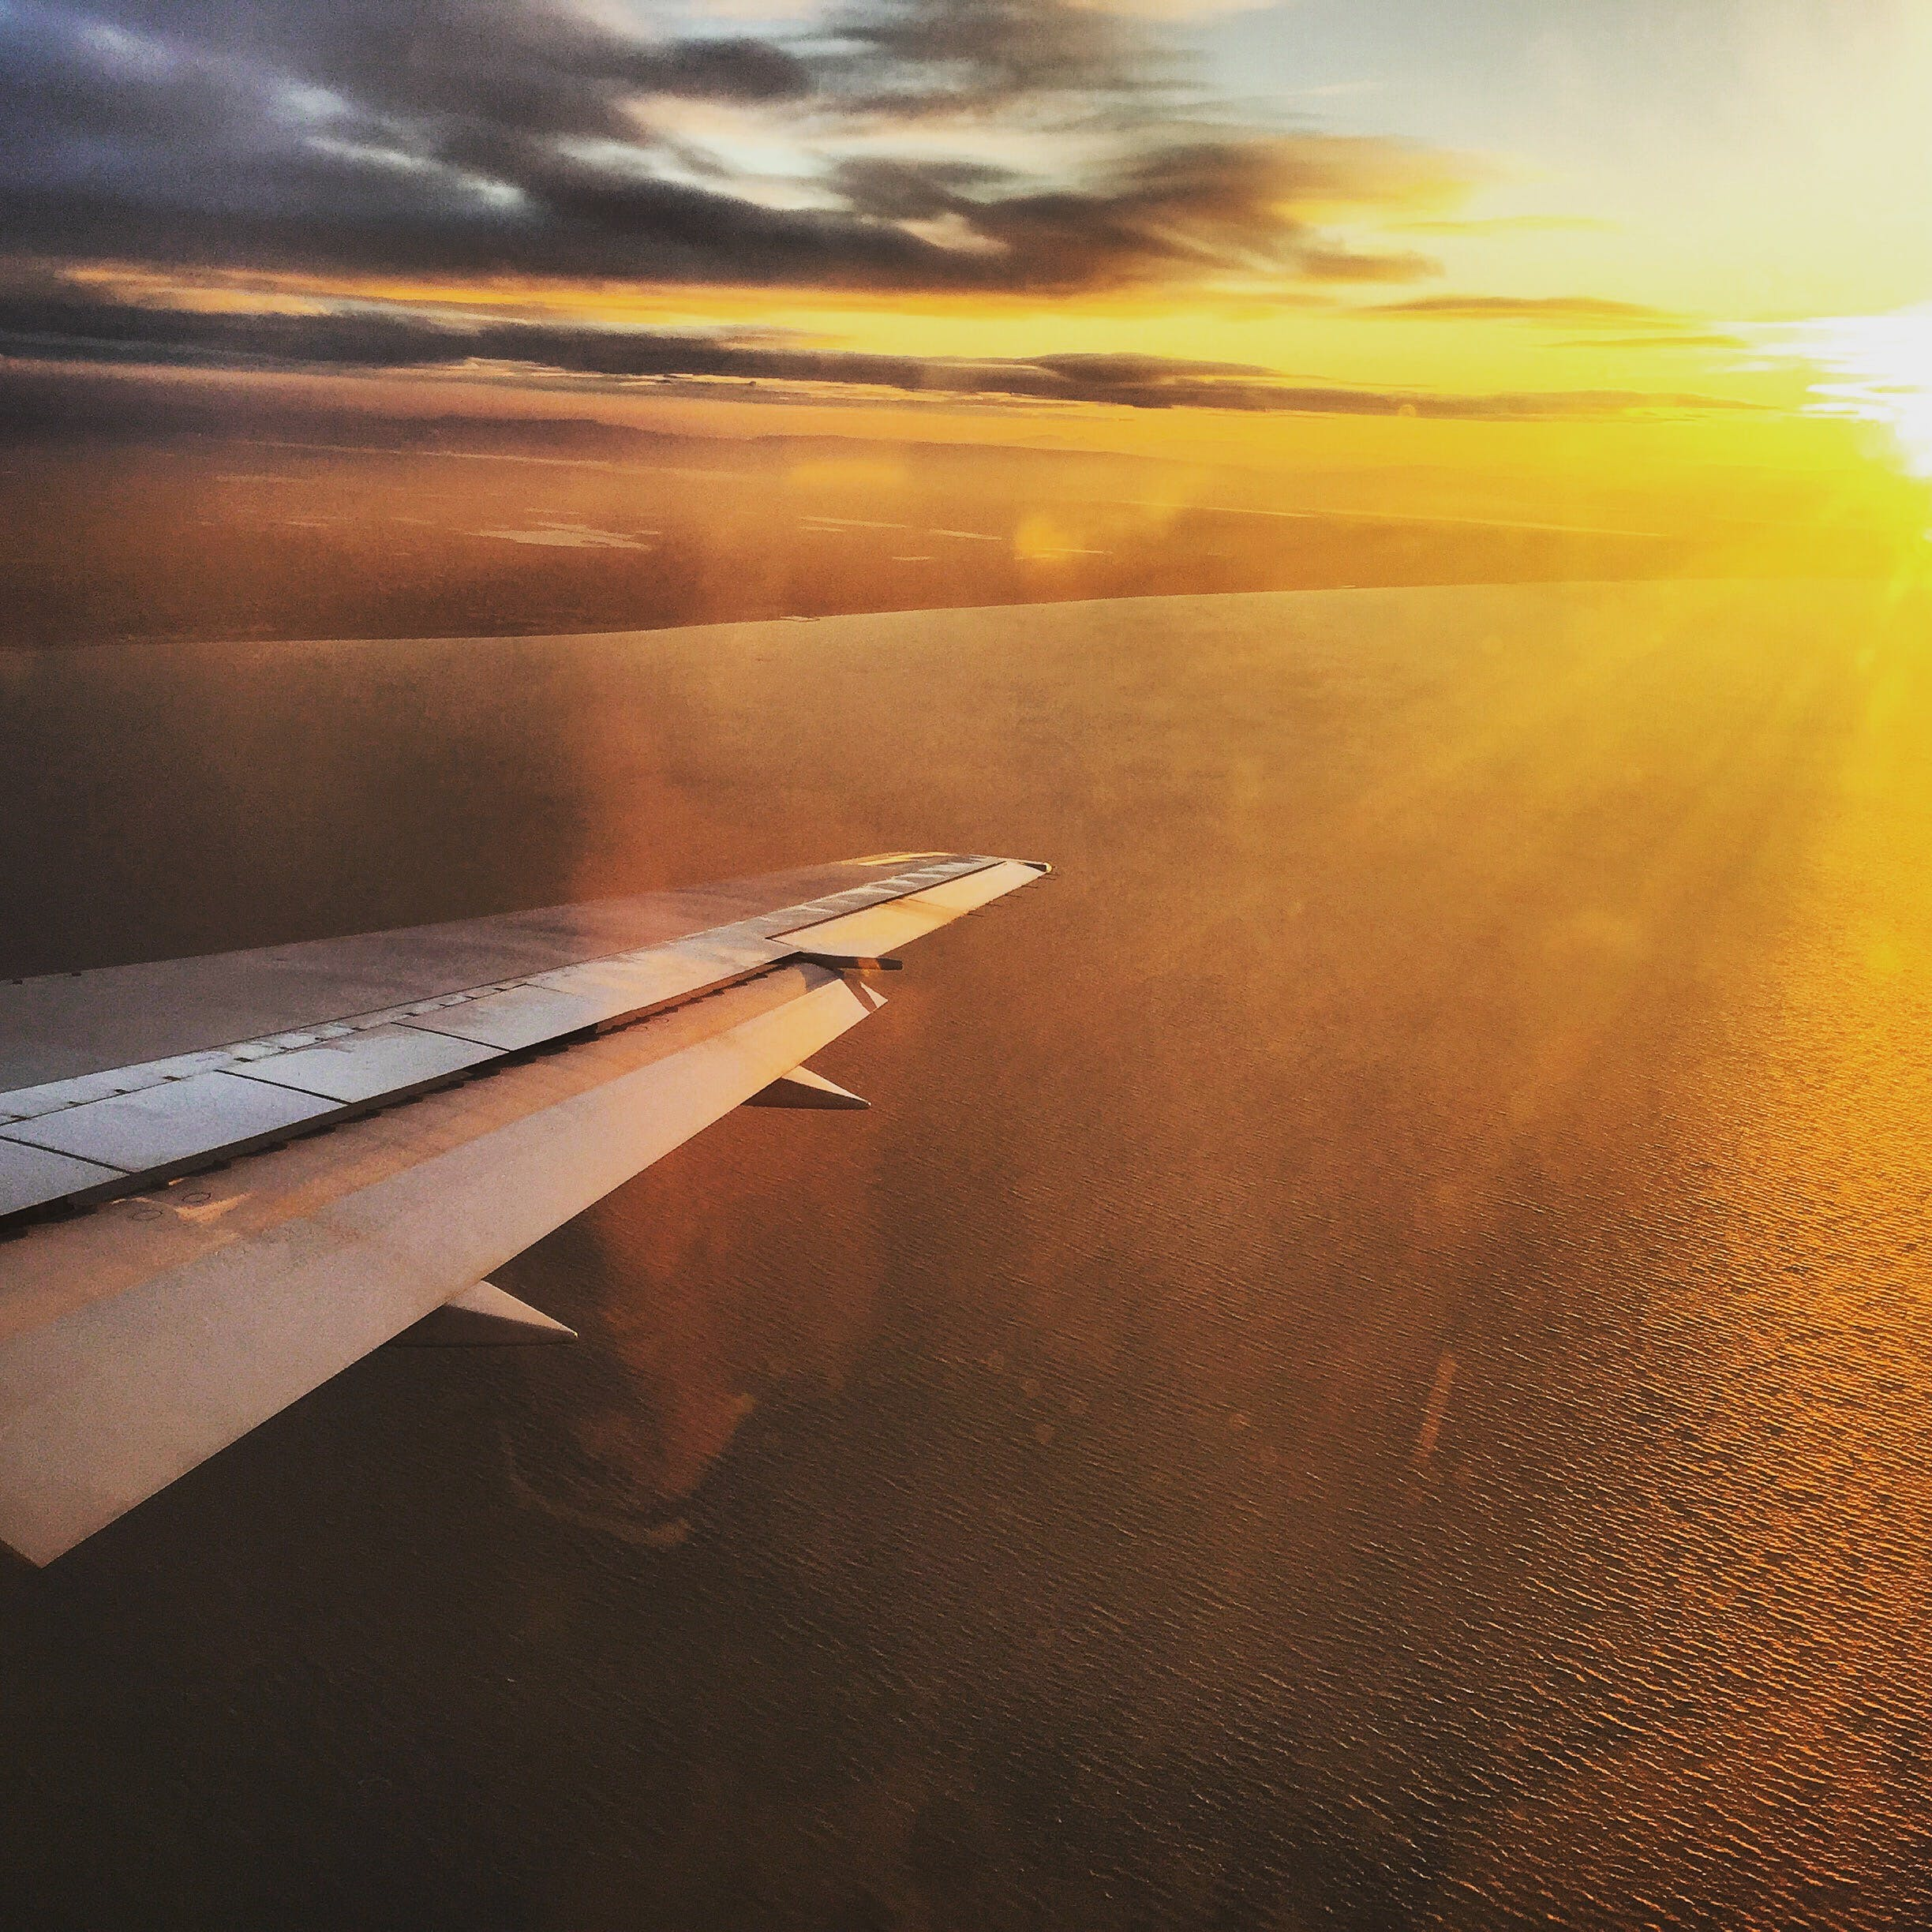 Aerial Photography of Plane Wing during Sunset